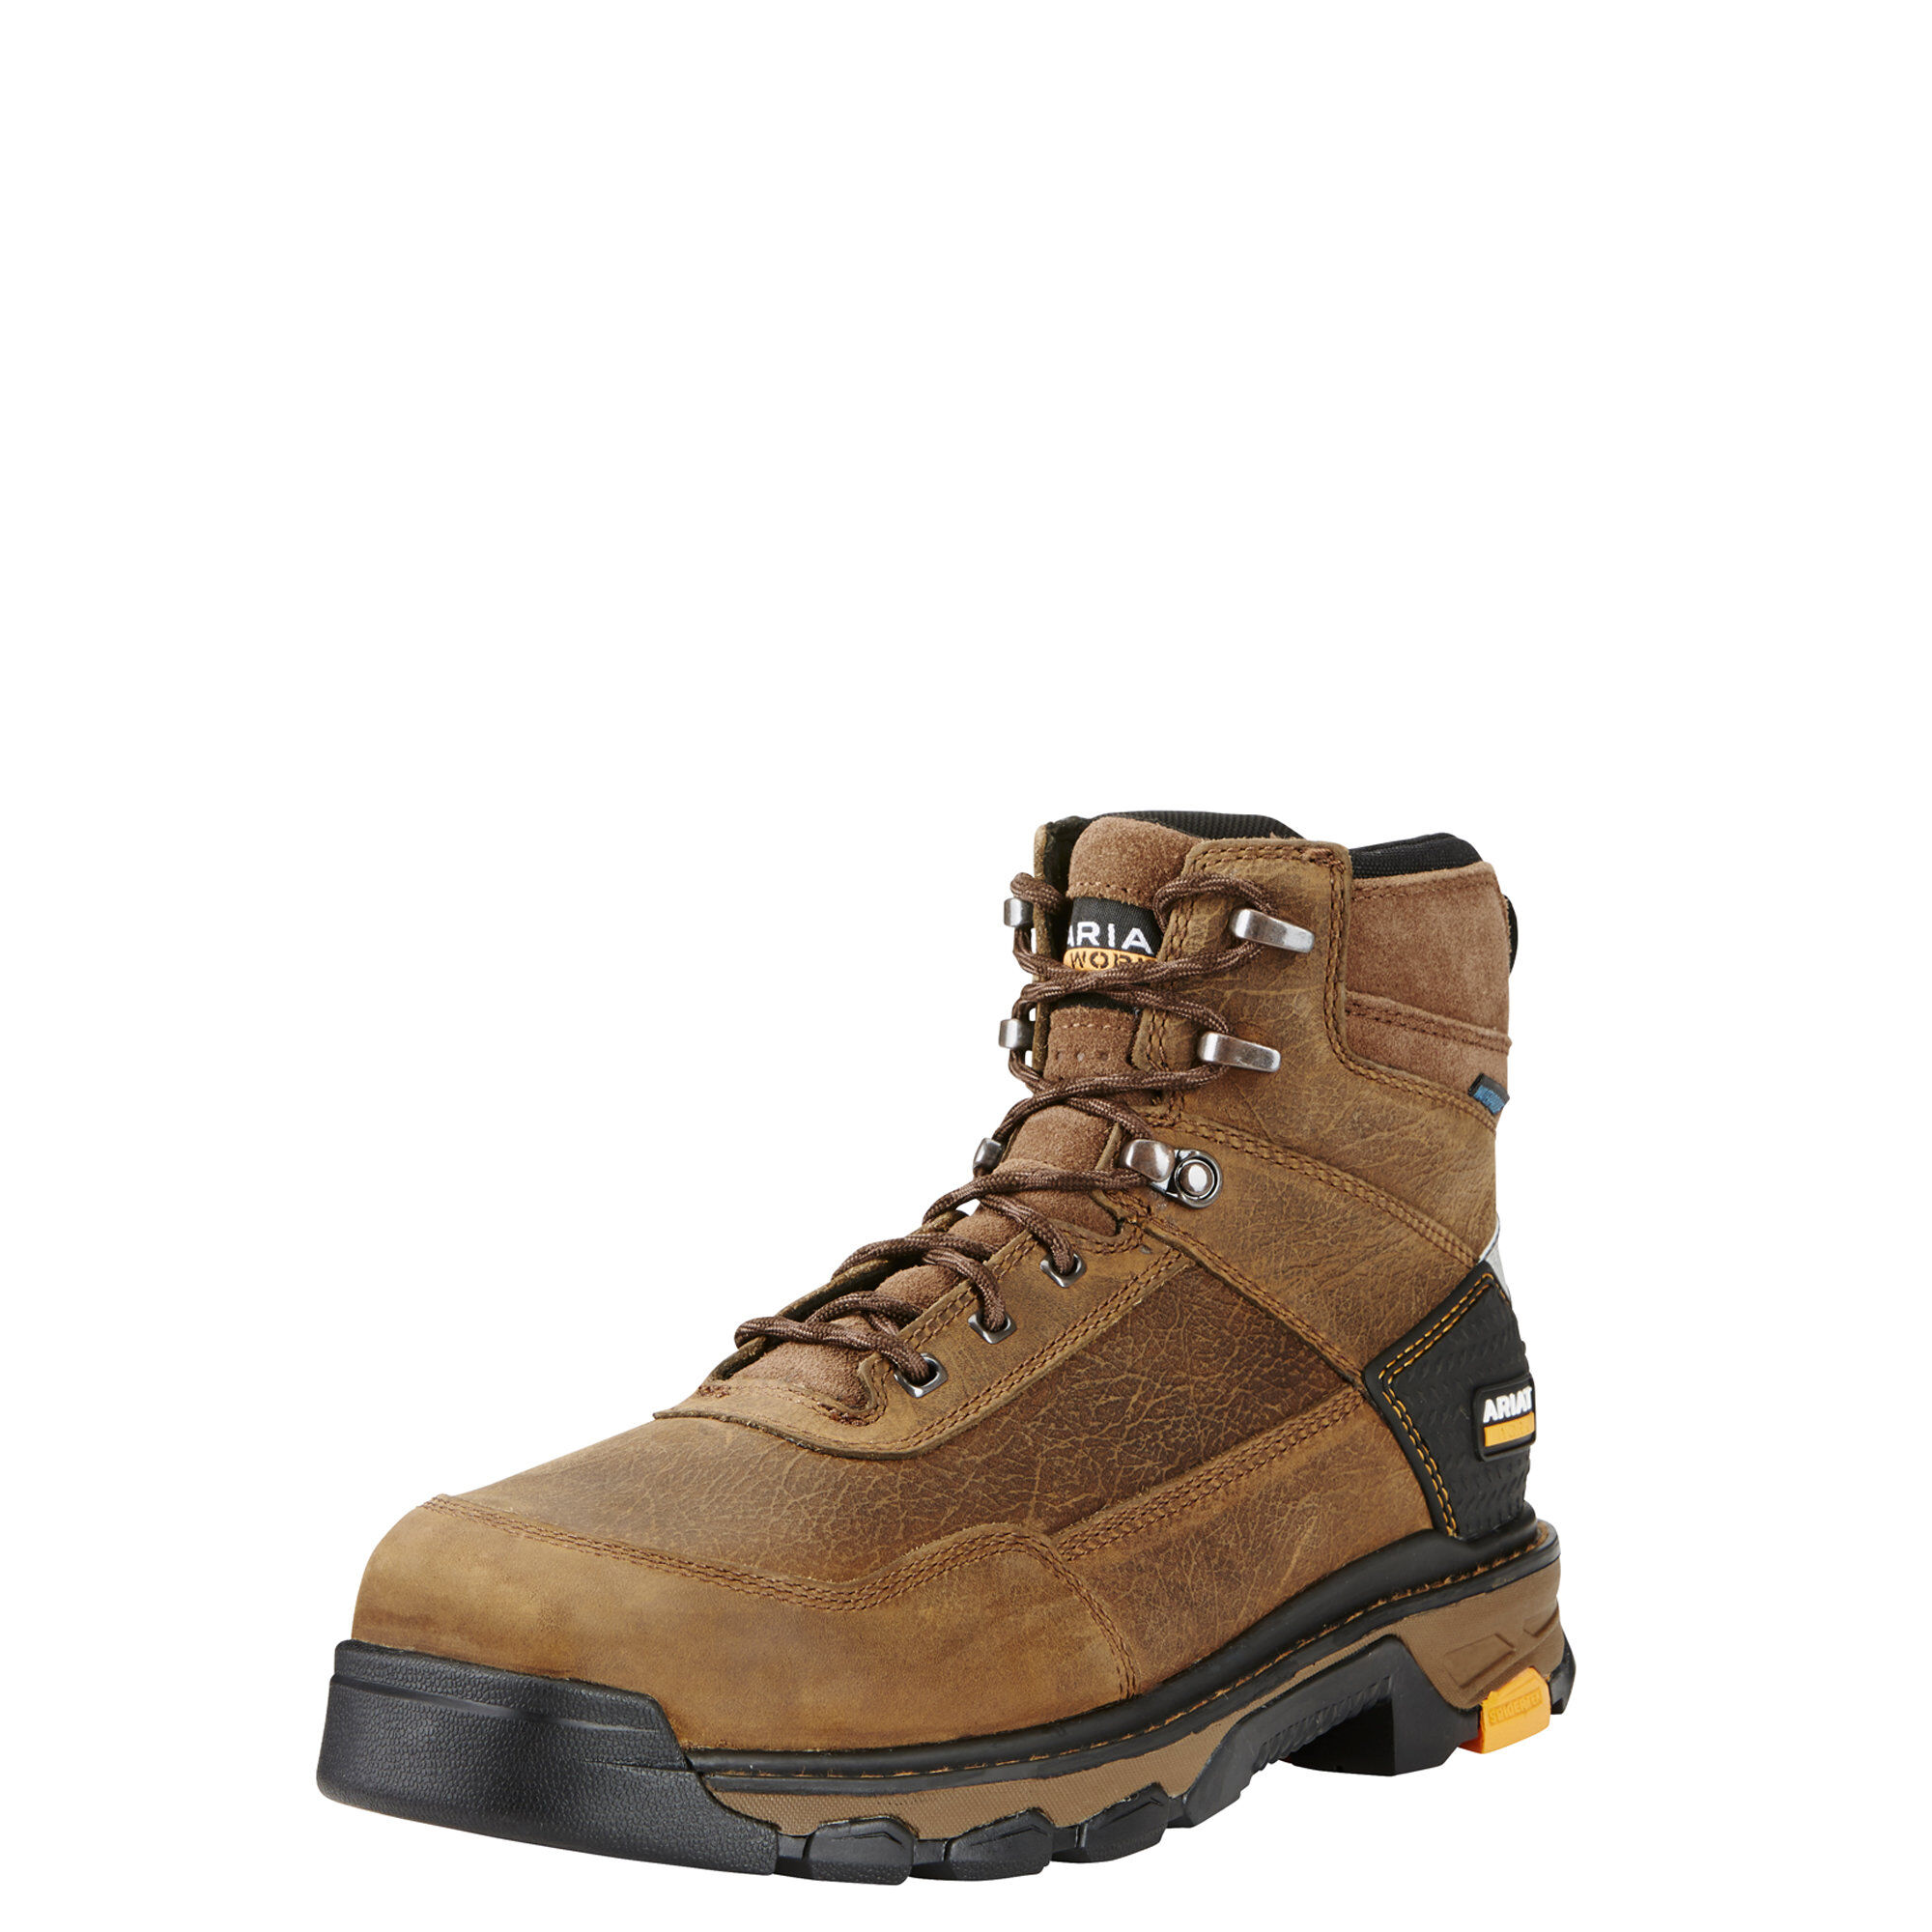 heritage work in rated maxwear boots comforter helpful pcr toe s reviews wedge safety customer thorogood moc mens comfortable composite boot non most american best men